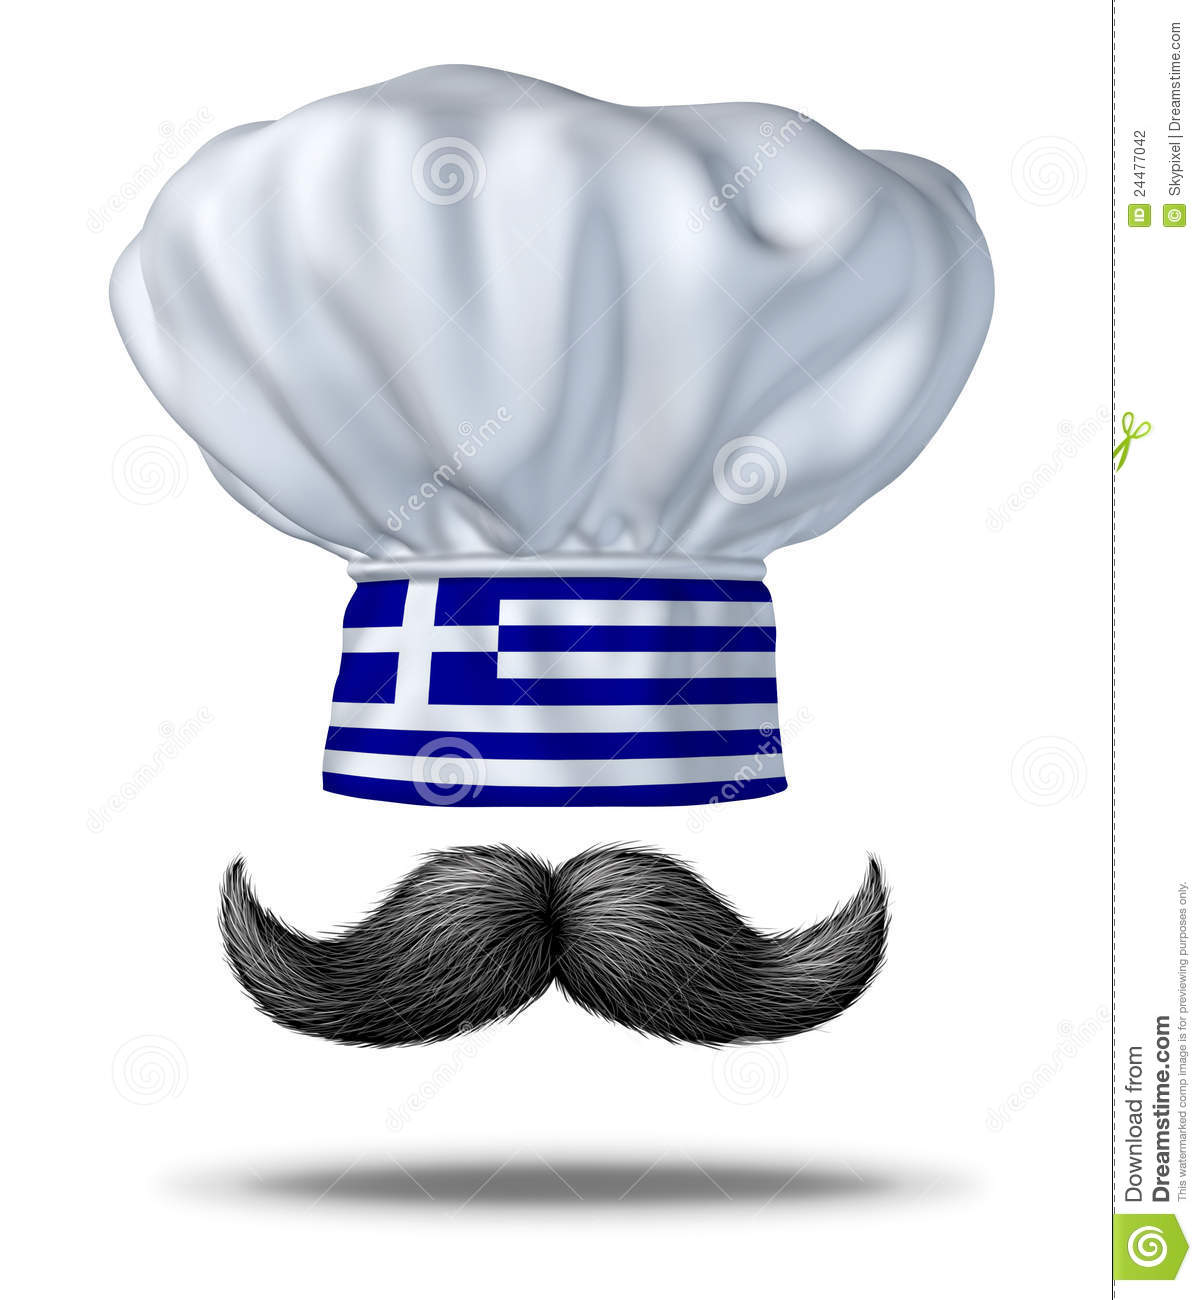 Clipart greek food vector free Greek Cooking Concept Stock Photography - Image: 24477042 vector free